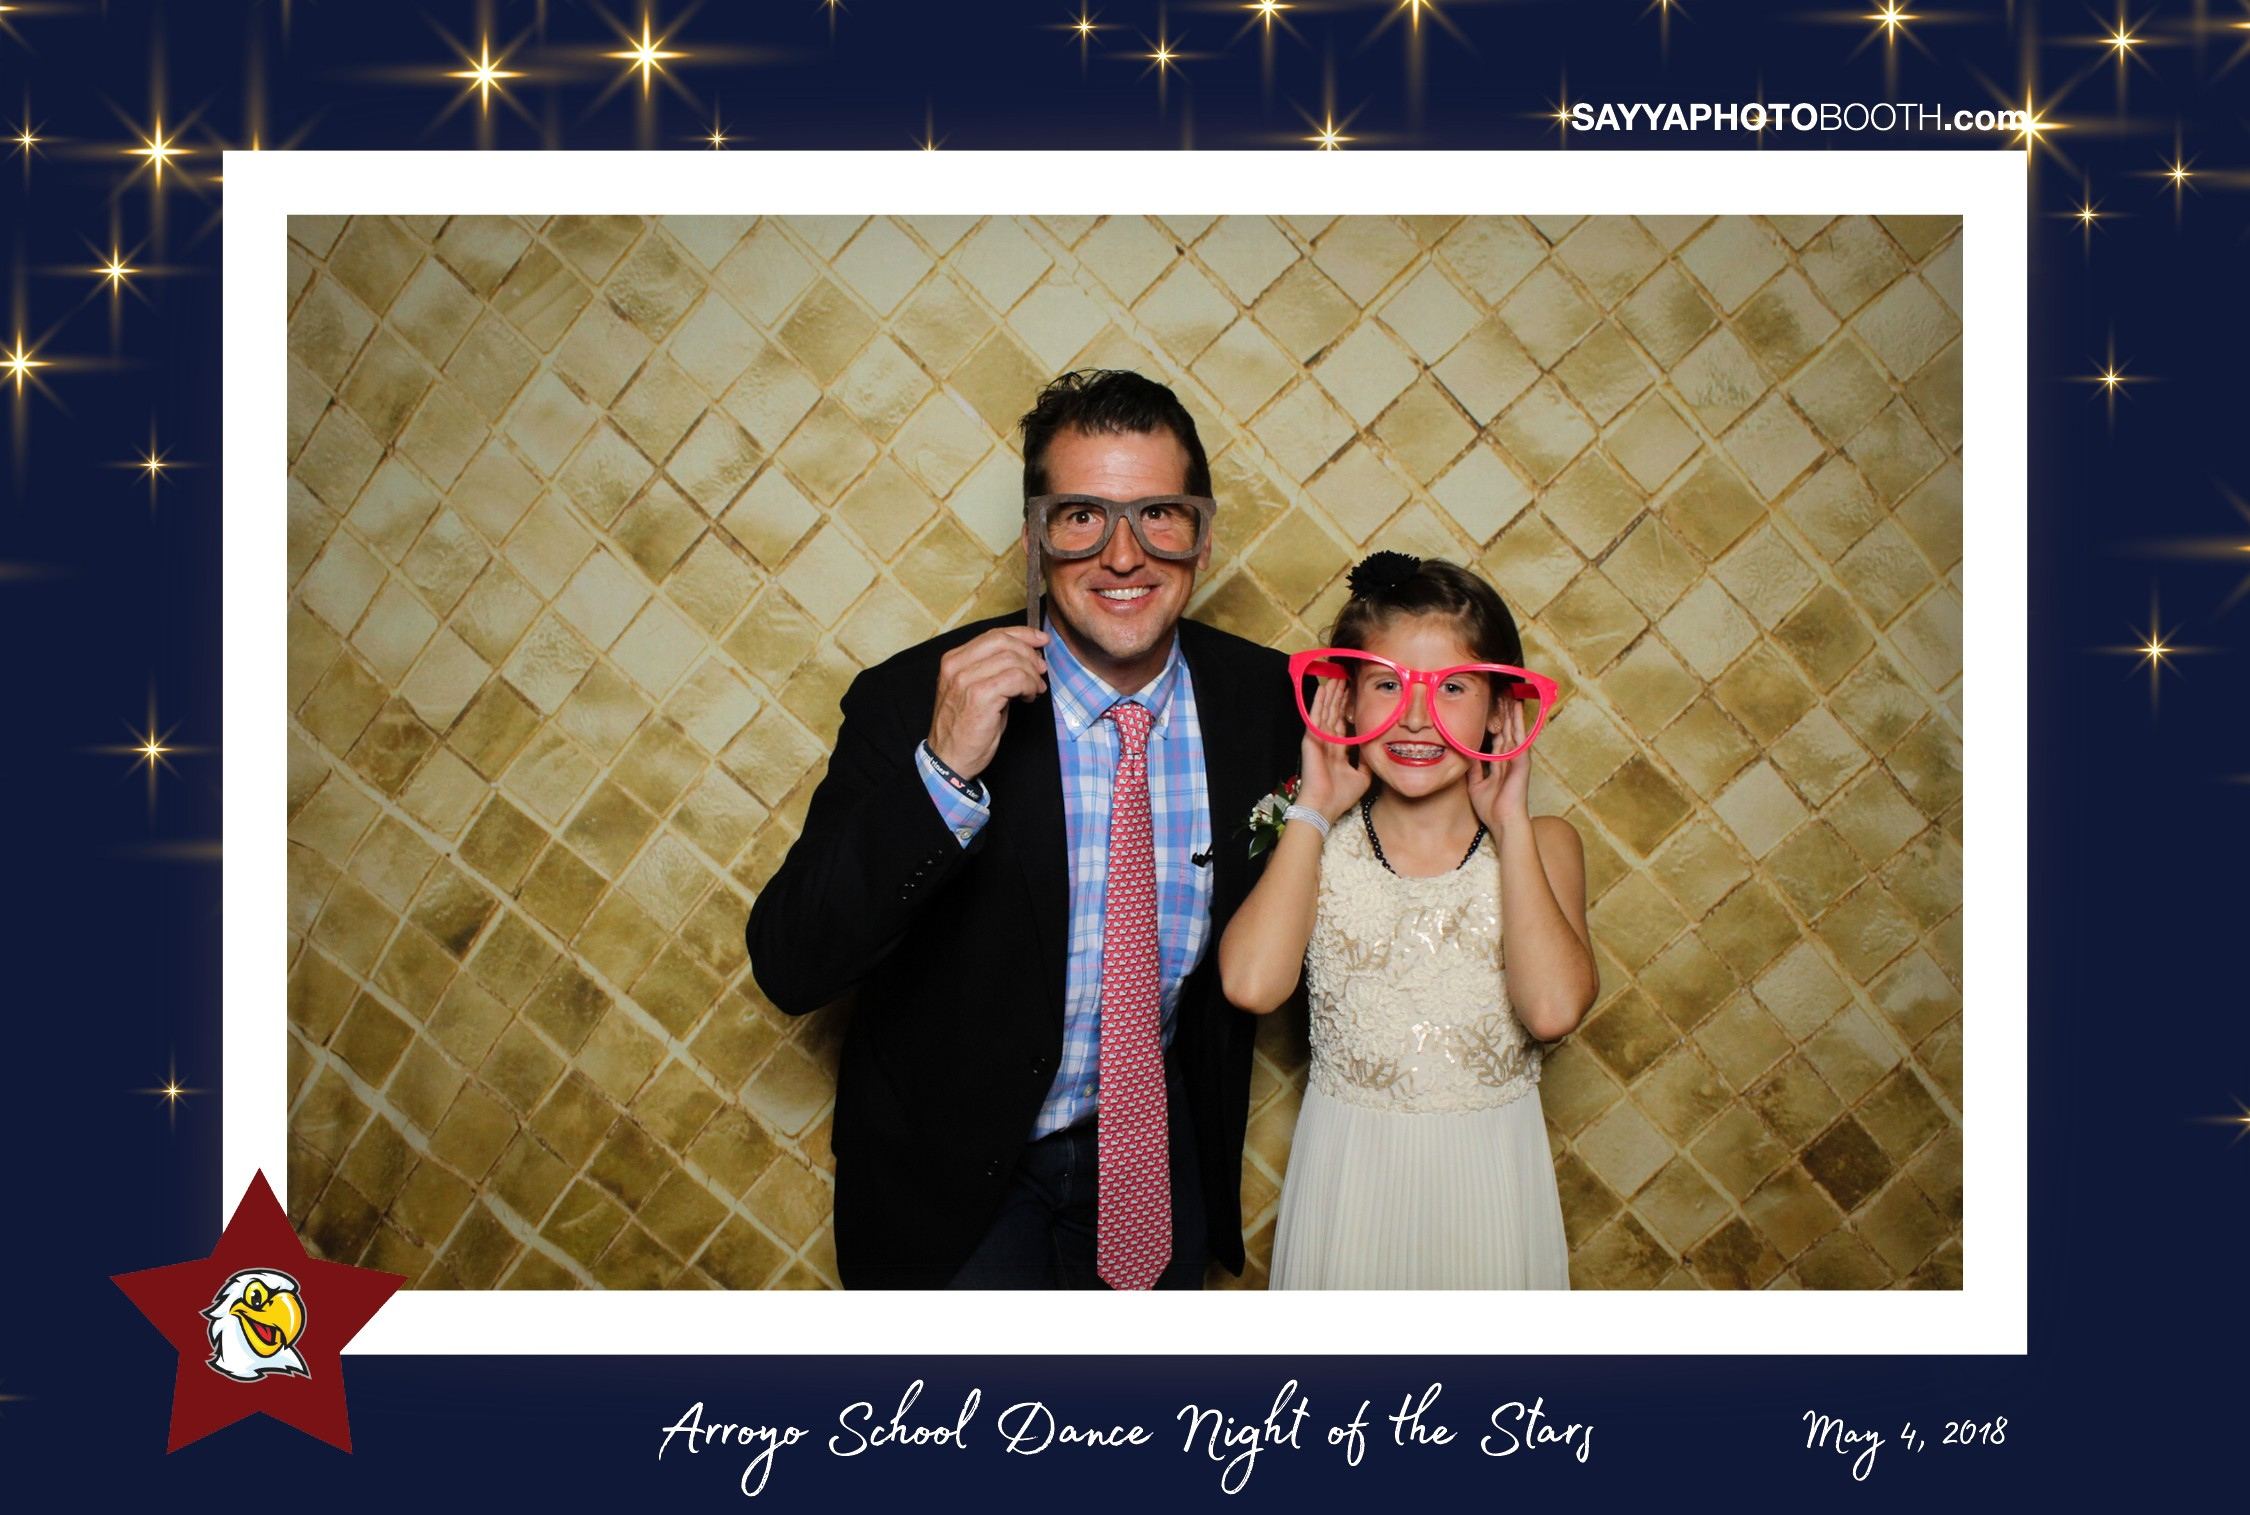 Arroyo School Dance